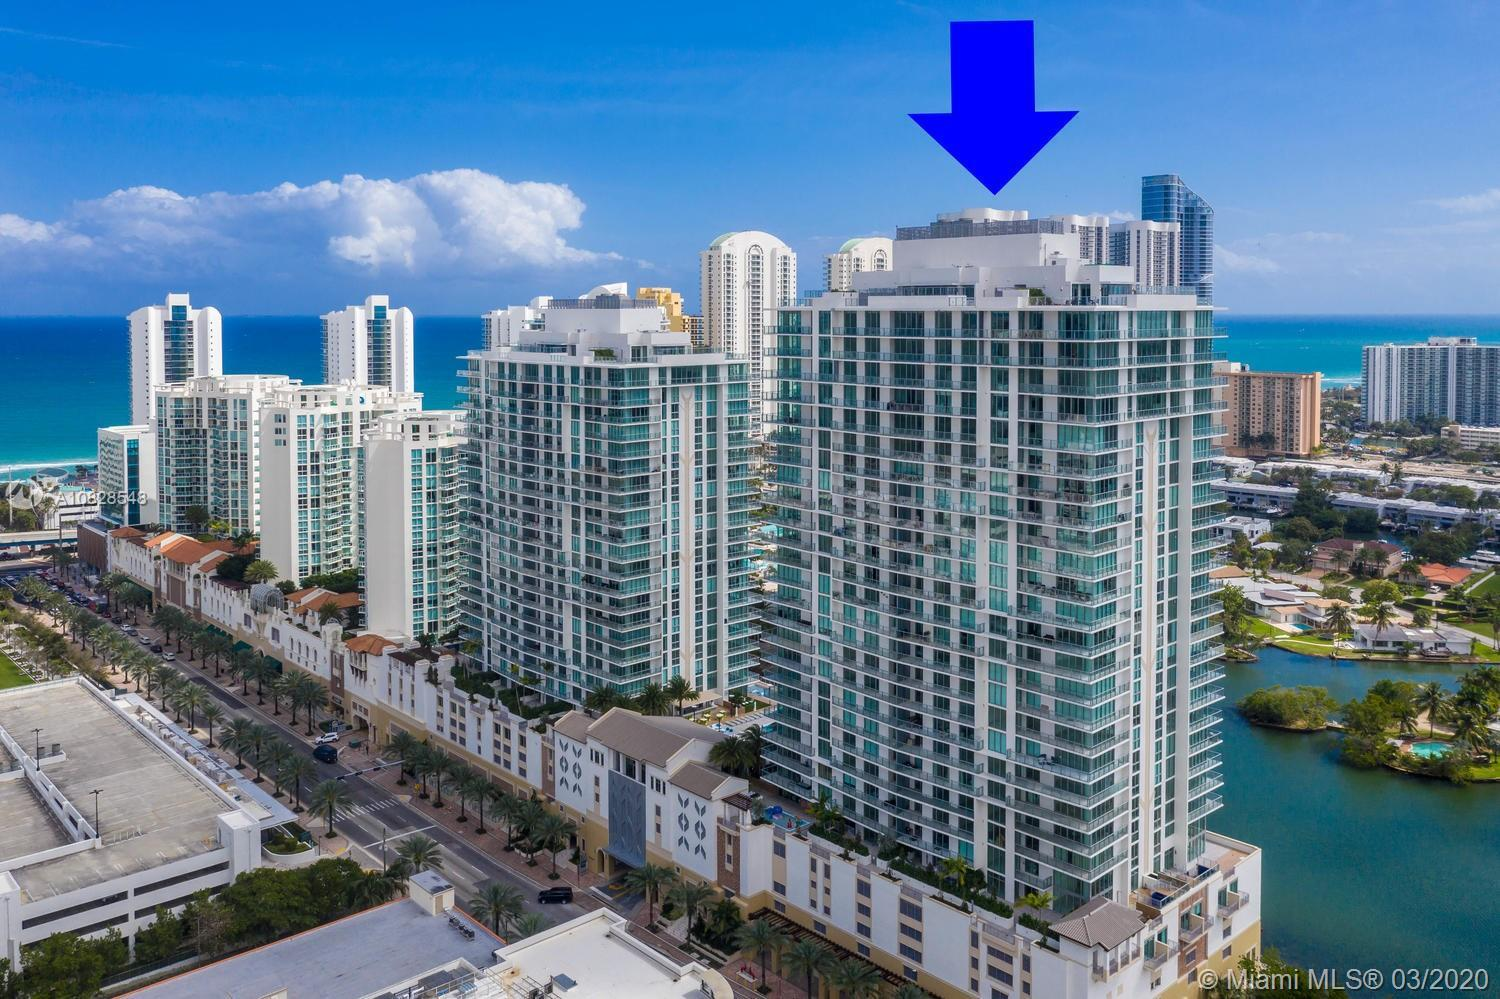 Jaw-Dropping 2 beds and 2 bath + Den unit w/ quartz counters and stainless steel appliances. Parque